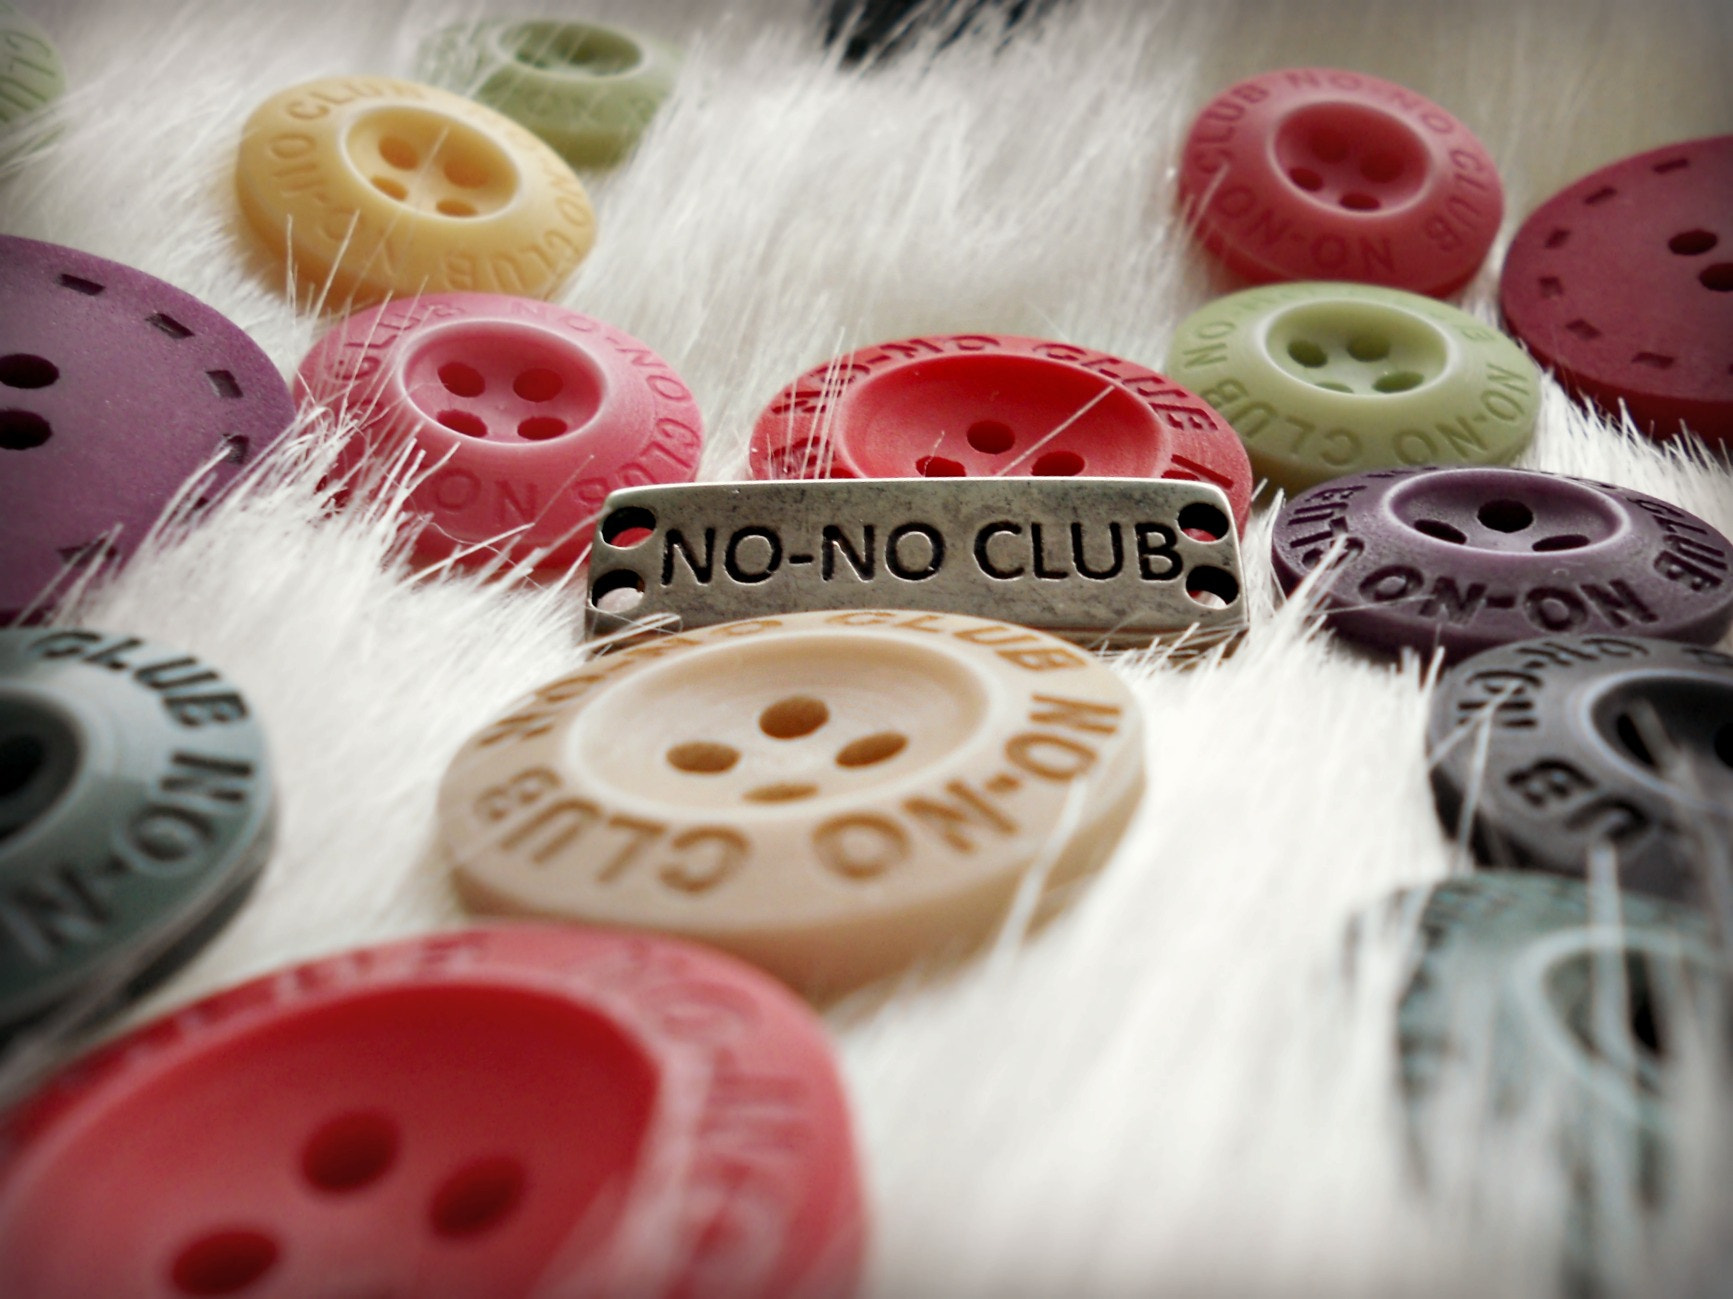 Photograph From No-No Club with love by Madam Mim on 500px